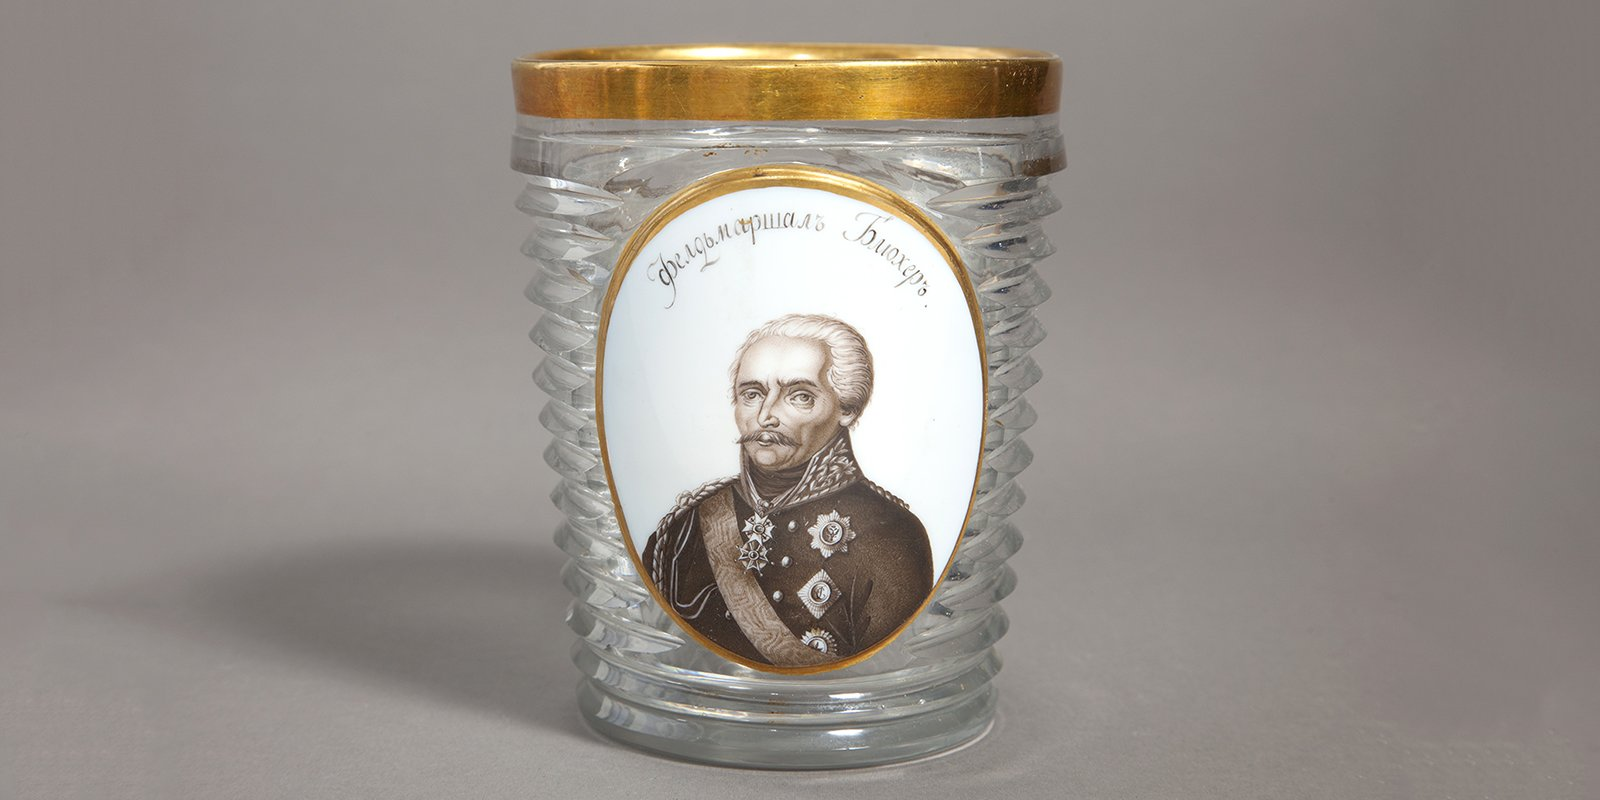 Shot glass adorned with portrait of Generalfeldmarschall von Blücher. Imperial Glass Factory, 1810s. Colourless cut glass, frosted glass inlays, enamelled and gilded